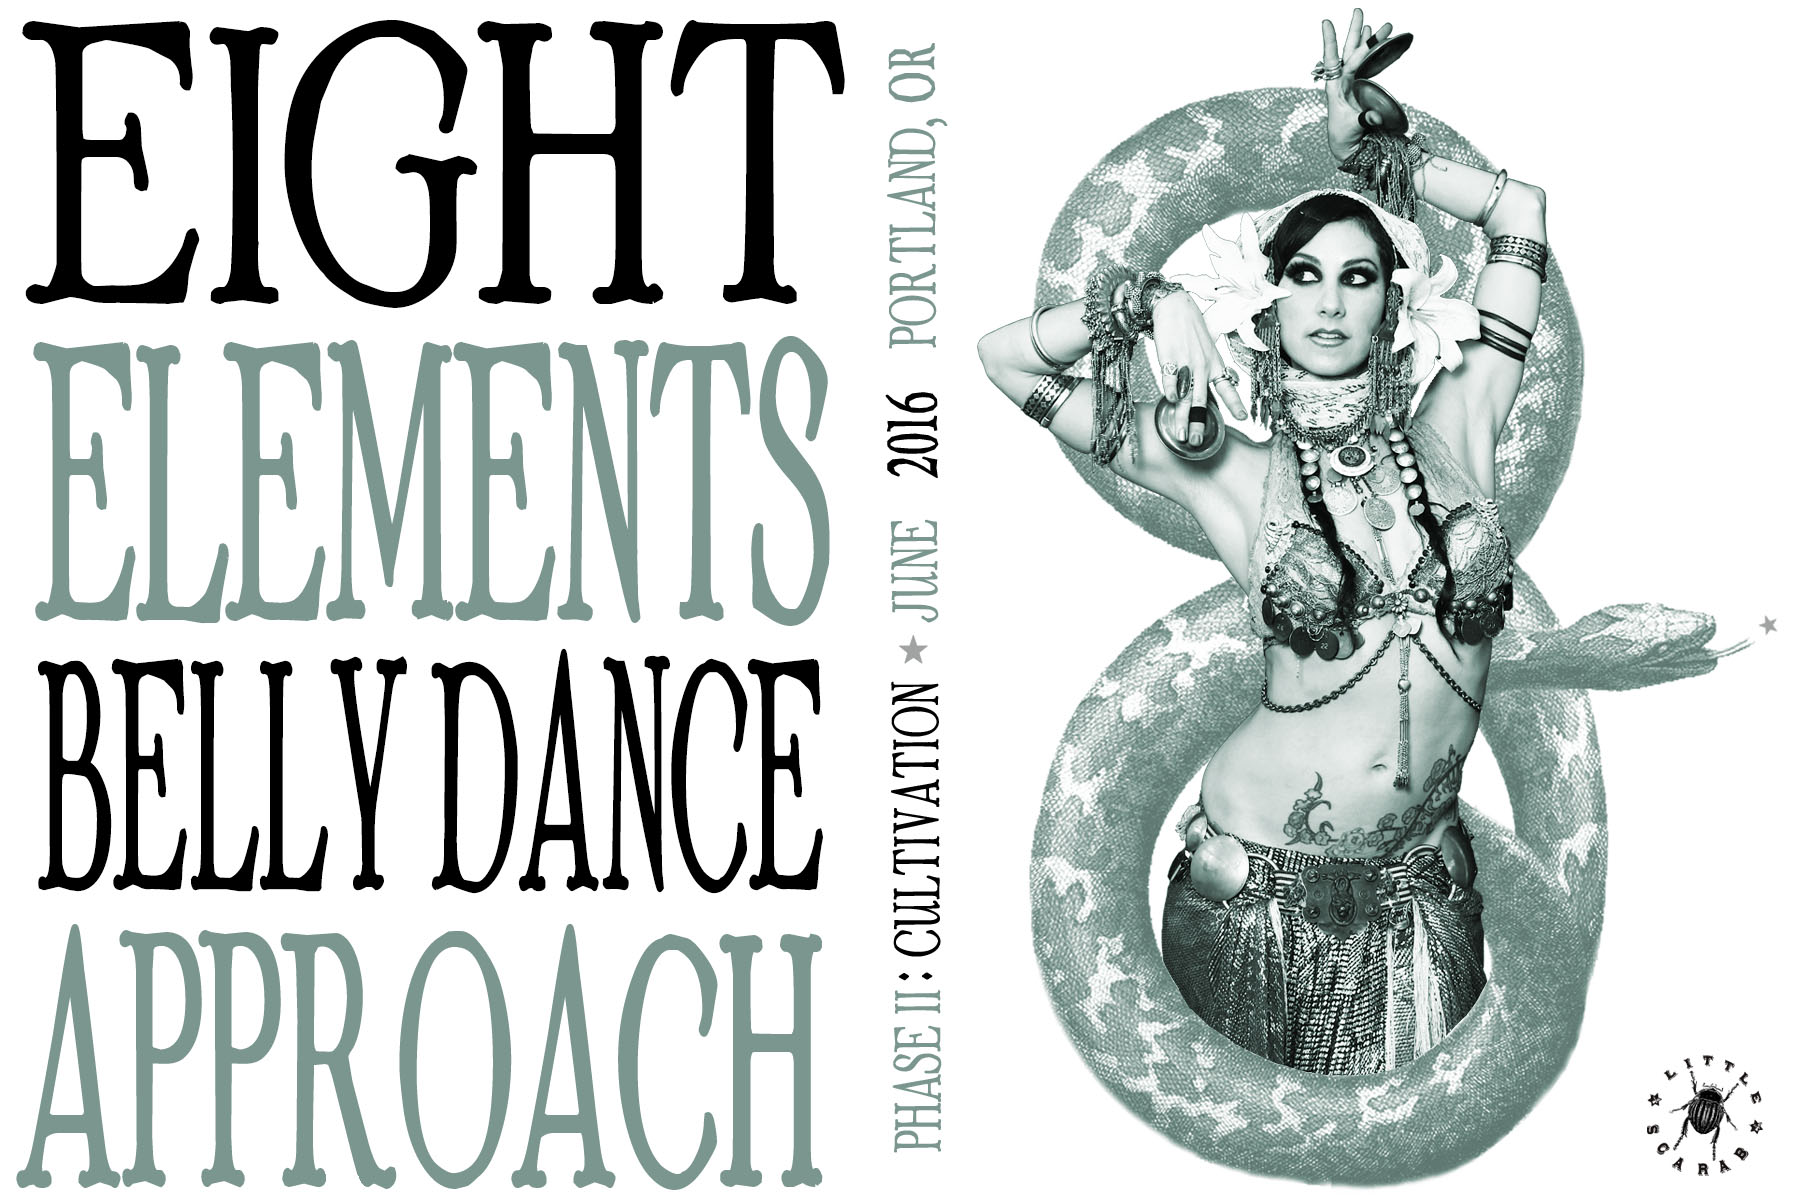 Rachel Brice's 8 Elements Approach